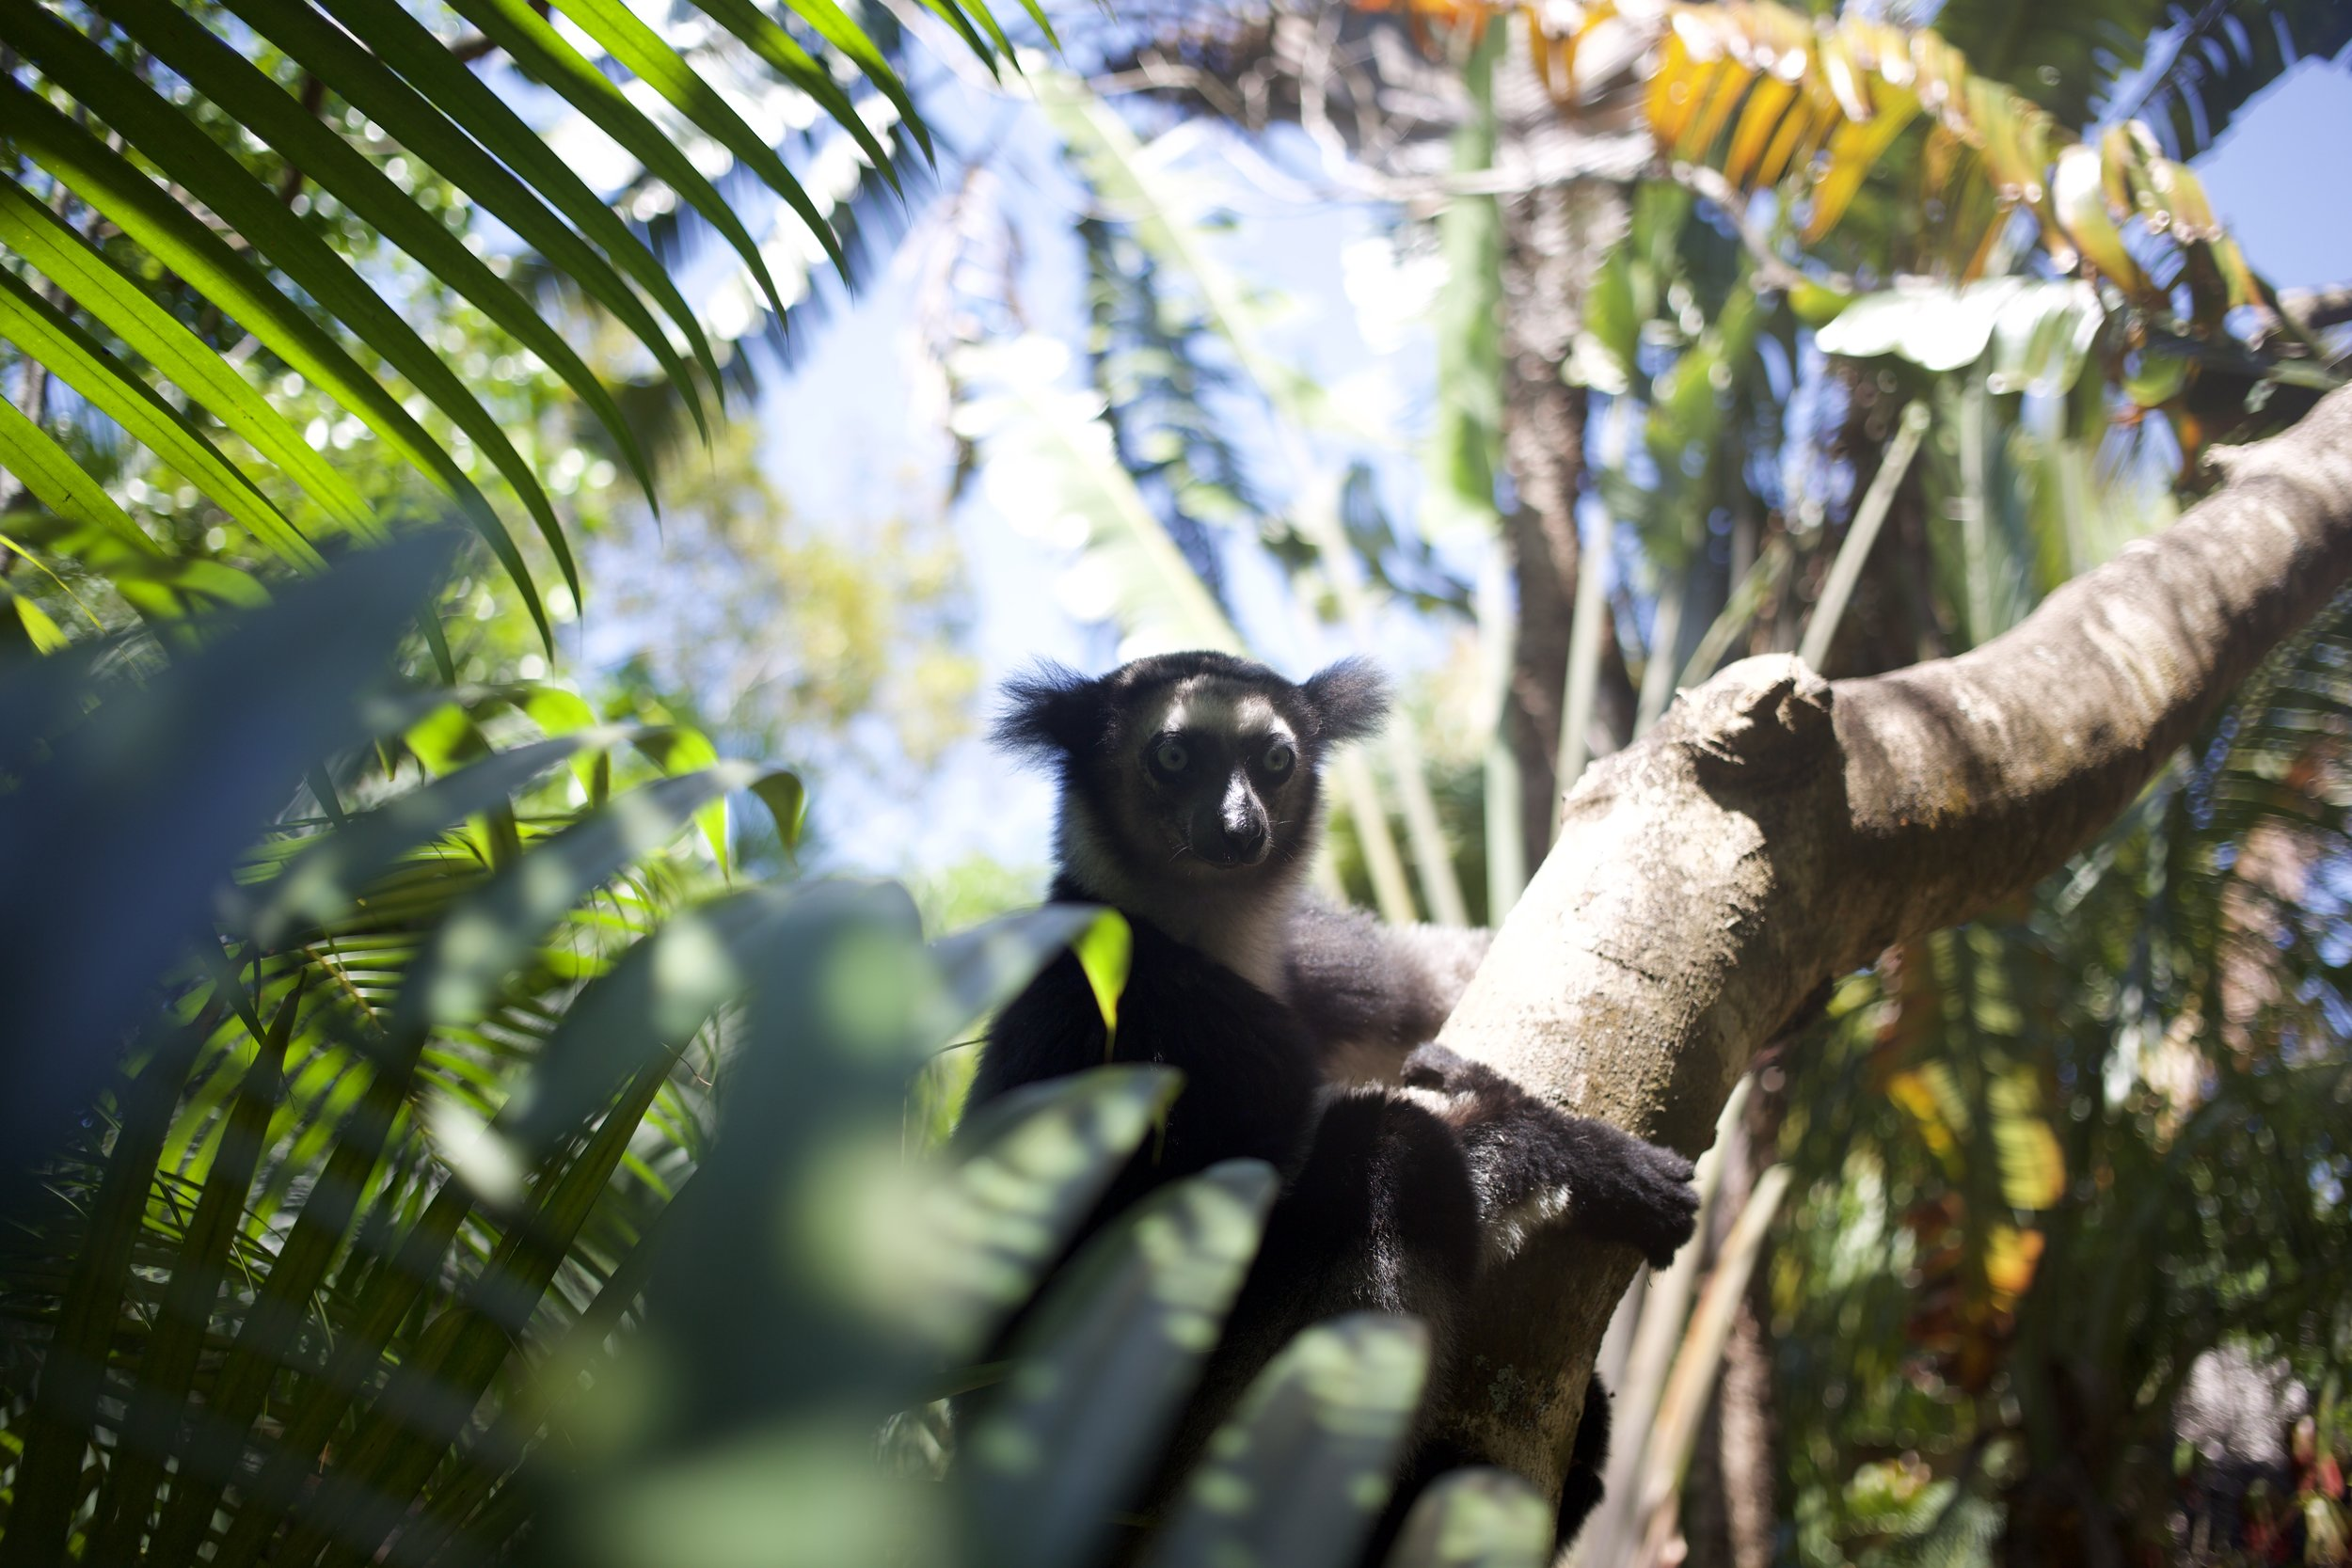 Species like the lemur are experiencing habitat loss at an alarming rate. Four species of lemur have been extinct since the mid-twentieth century